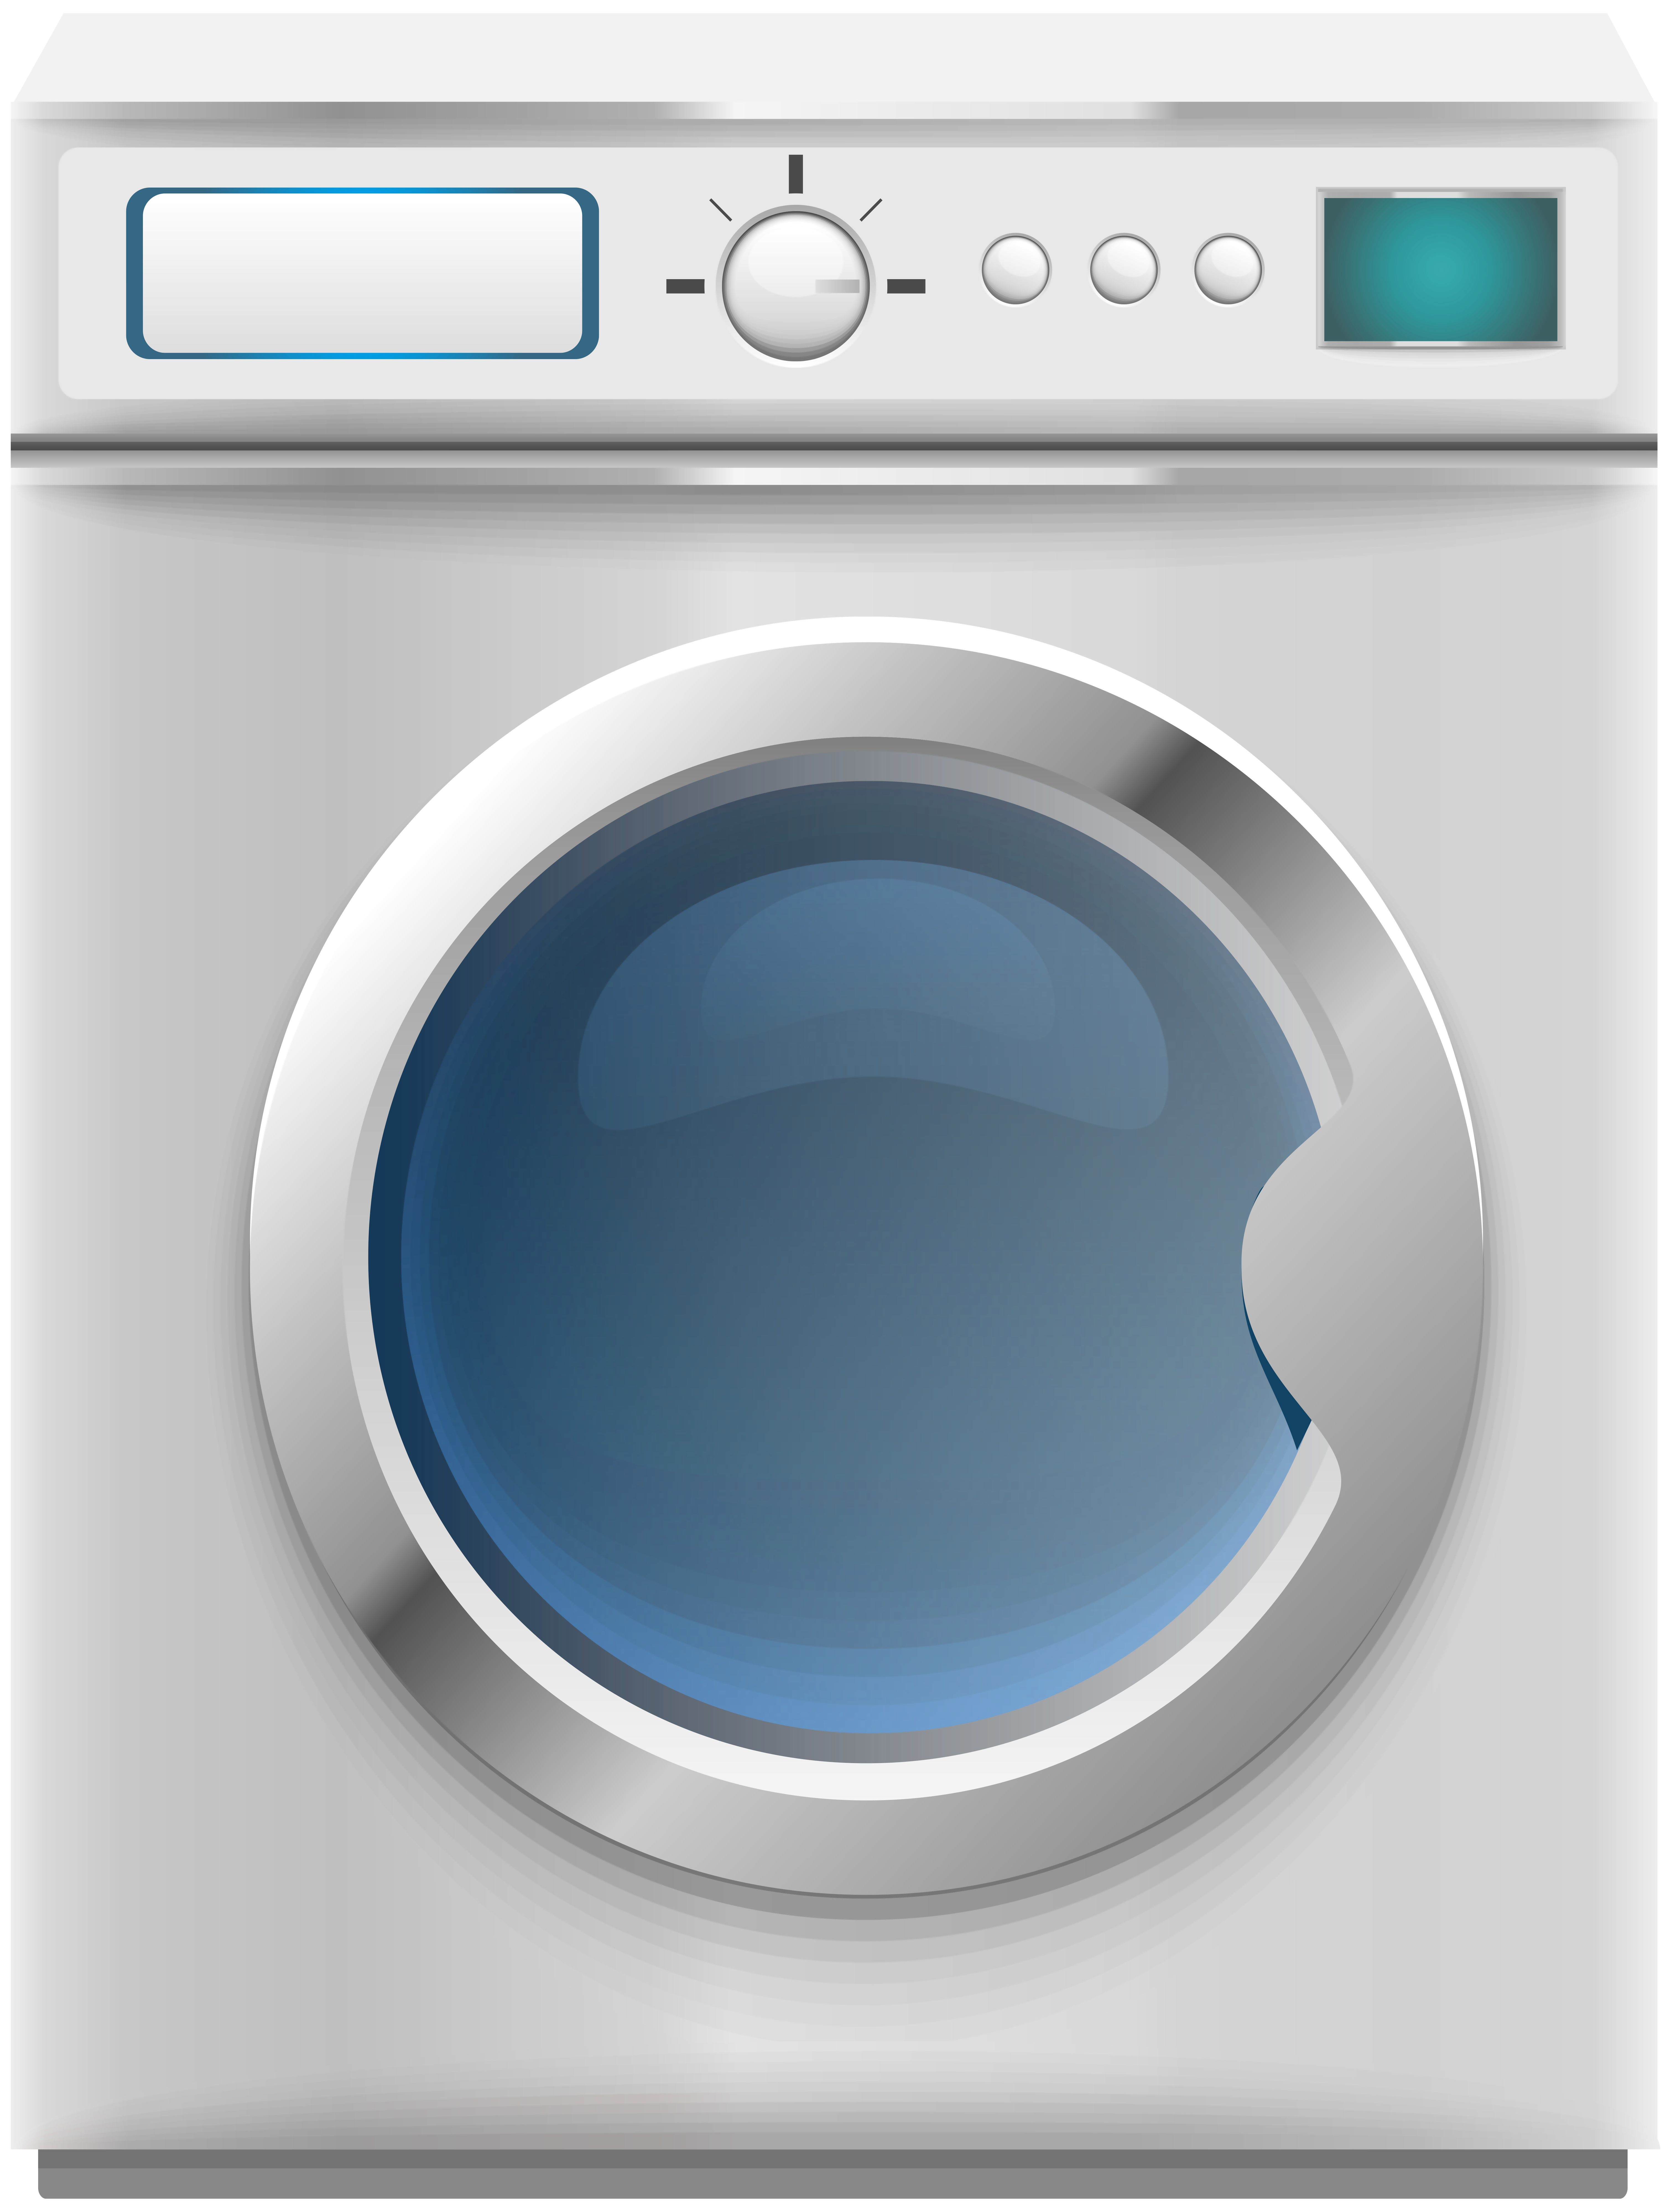 Washing machine clipart picture banner transparent download Washing Machine PNG Clip Art - Best WEB Clipart banner transparent download